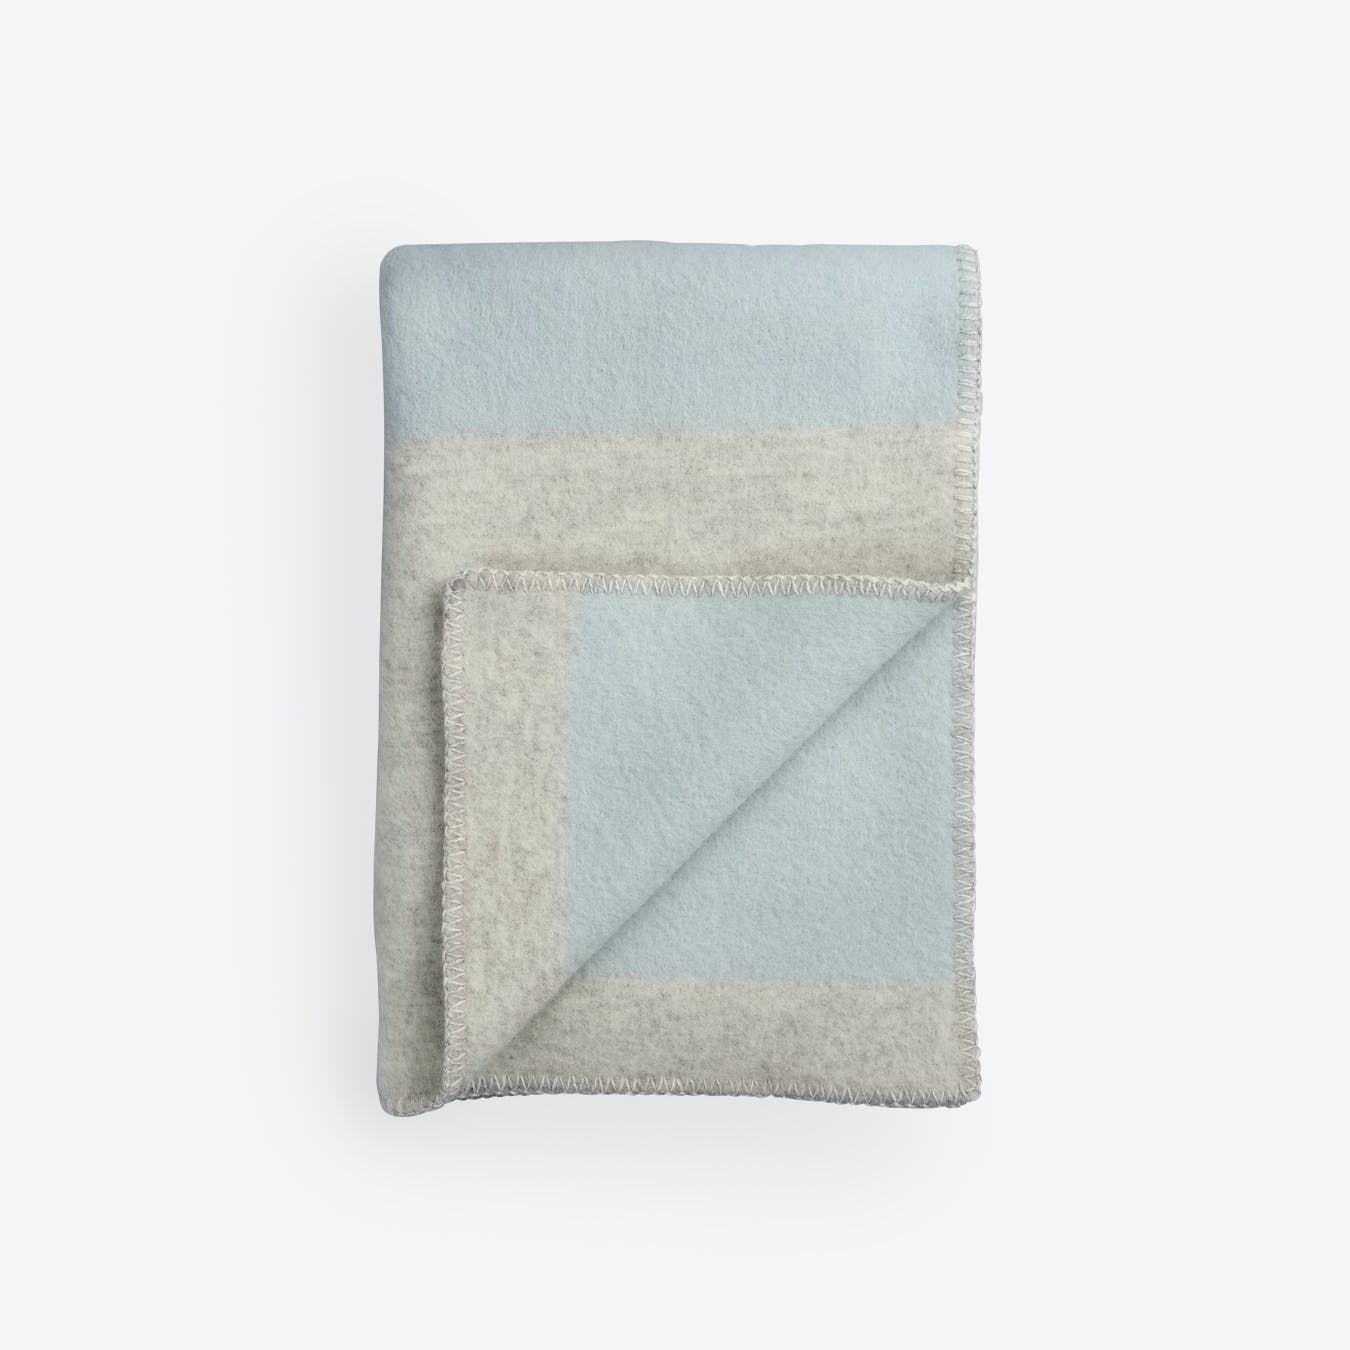 Bergstaden Lambswool Throw in Grey/Blue